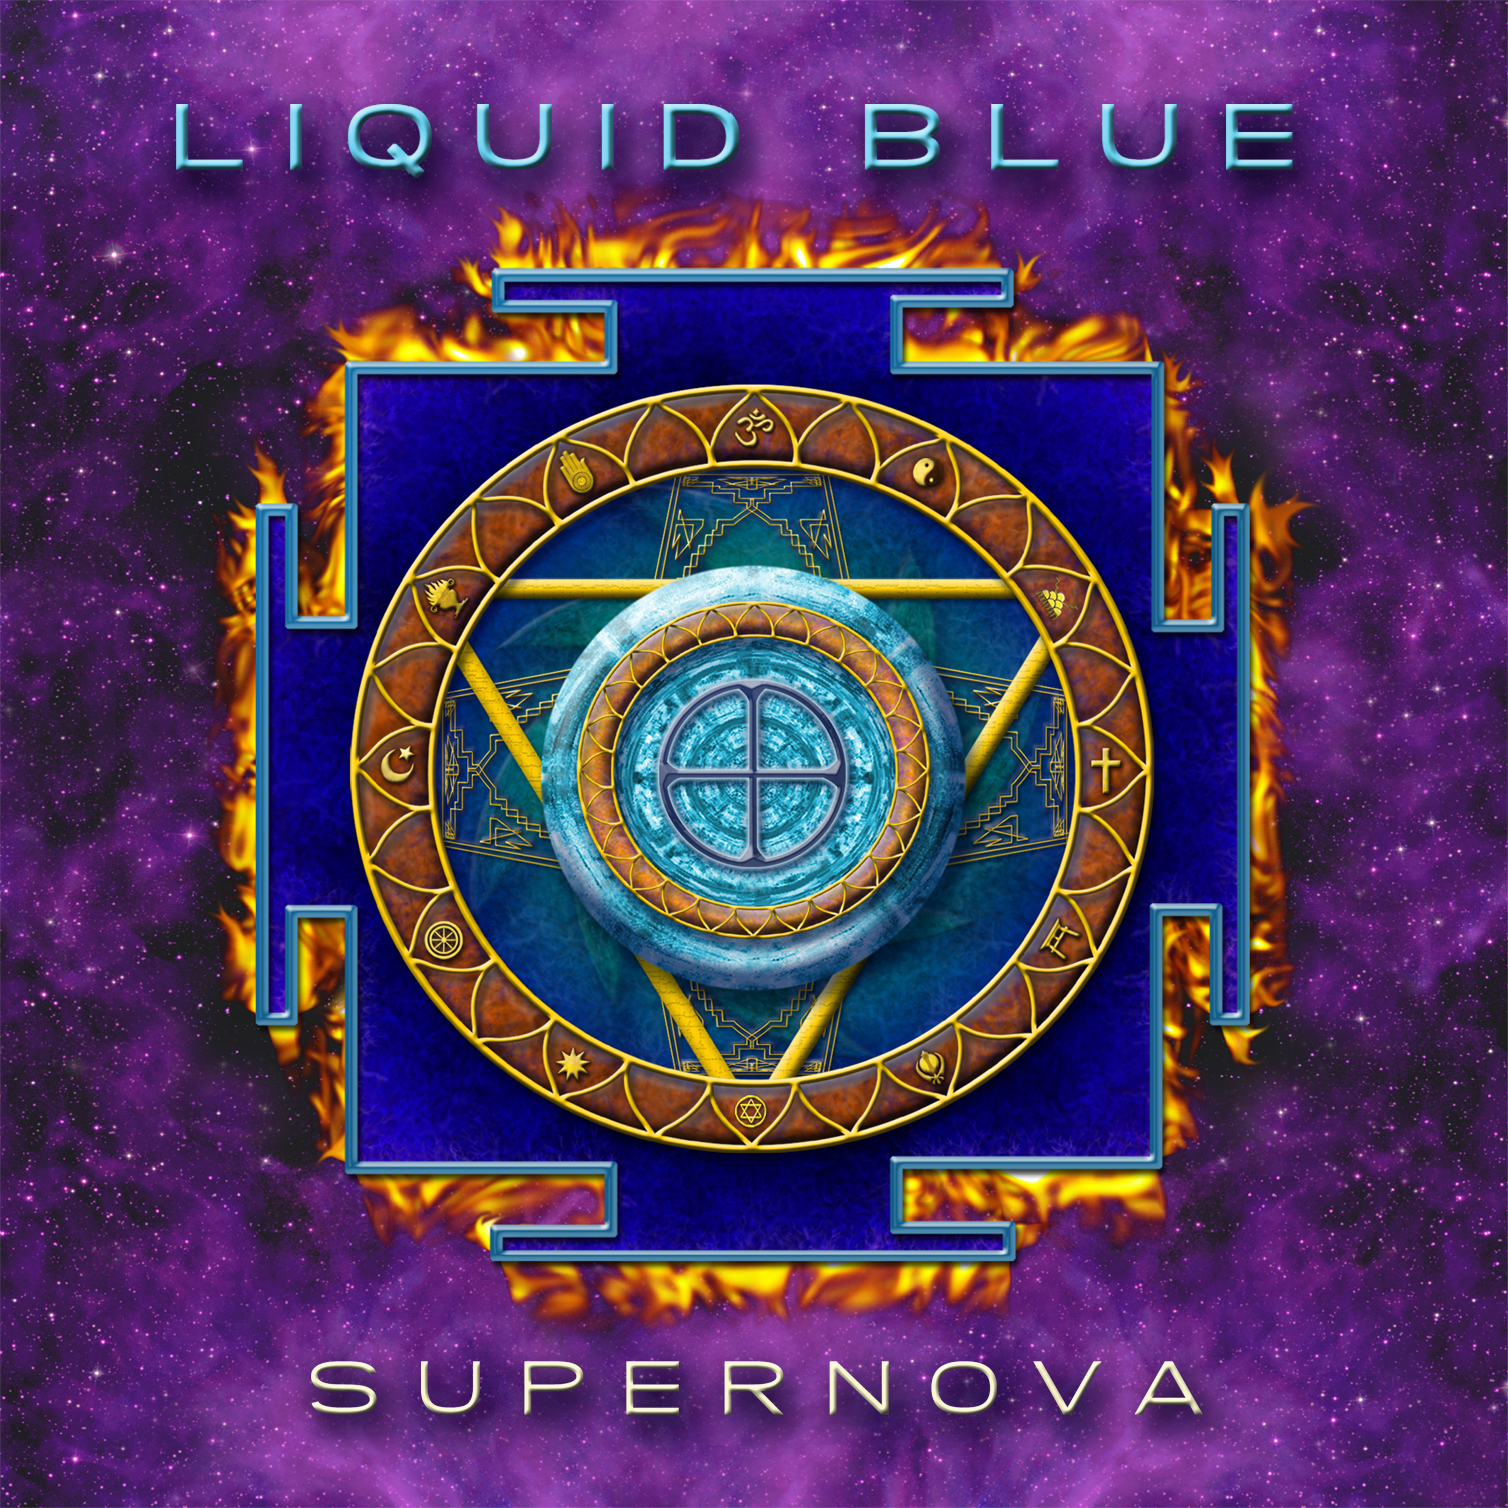 Supernova - Liquid Blue